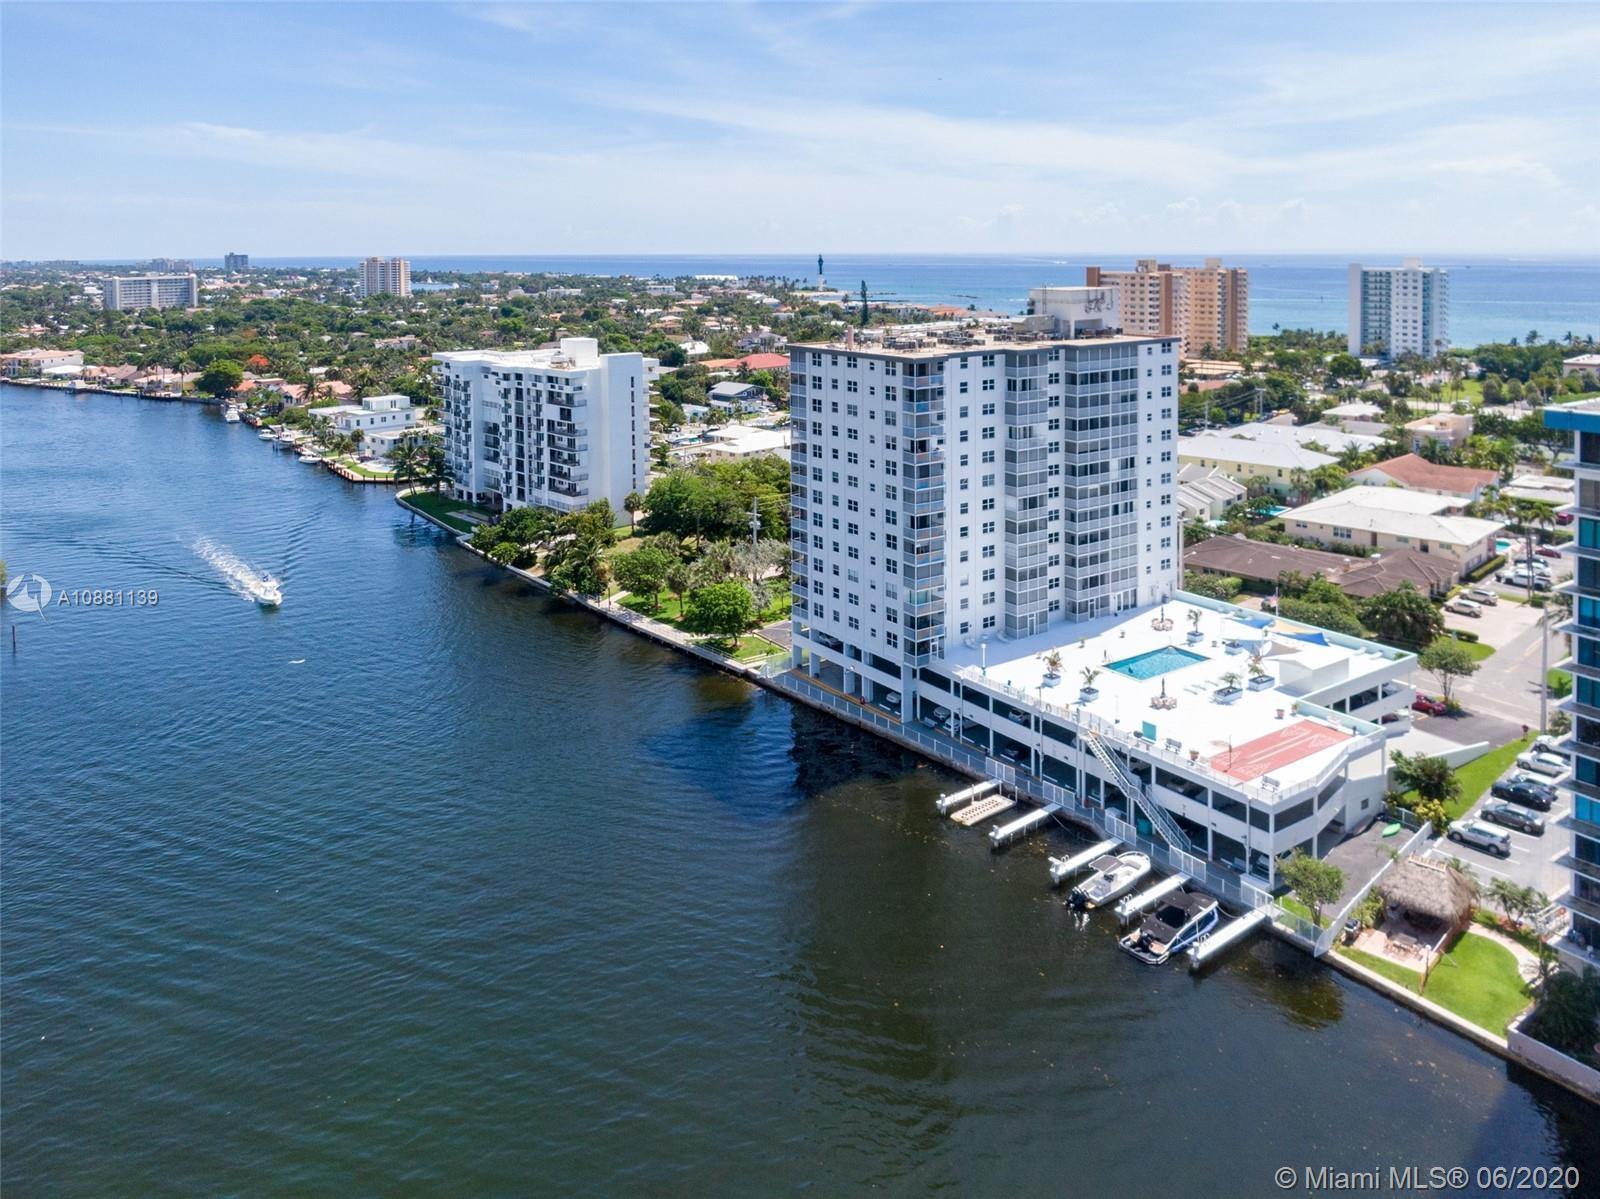 Stunning 1bed/1bath condo in the completely rebuilt from the ground up, Intracoastal Towers. Voted B